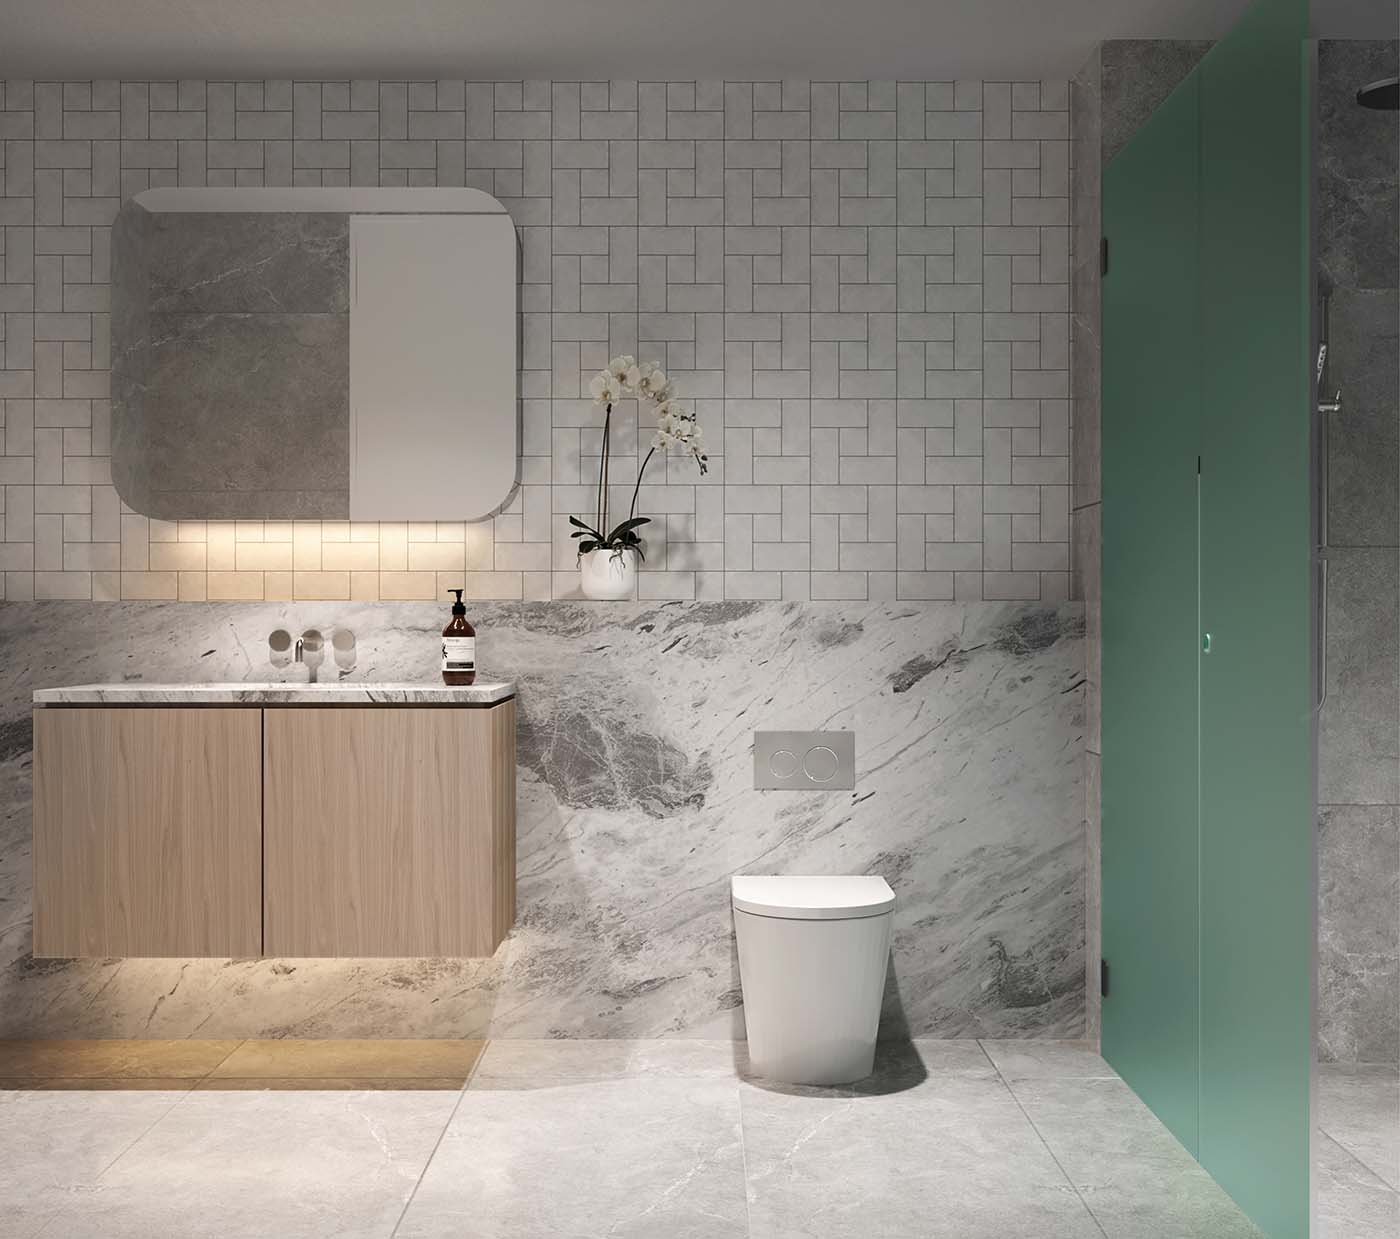 Bathroom in Cronulla Beach showing different stones, sink and toilet